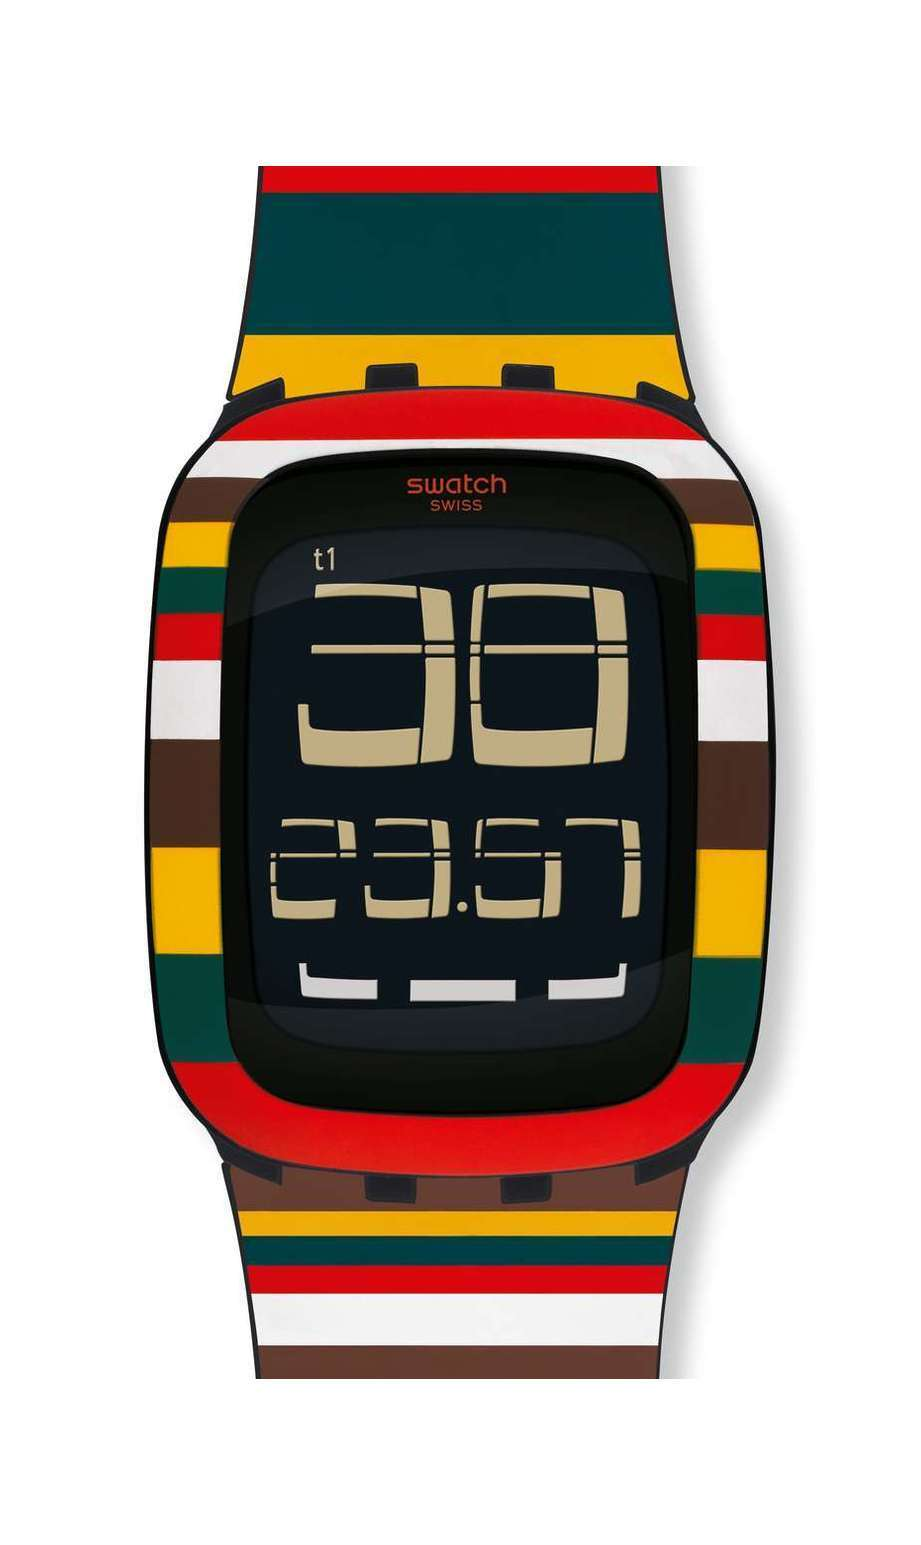 Swatch - TENDONE - 1